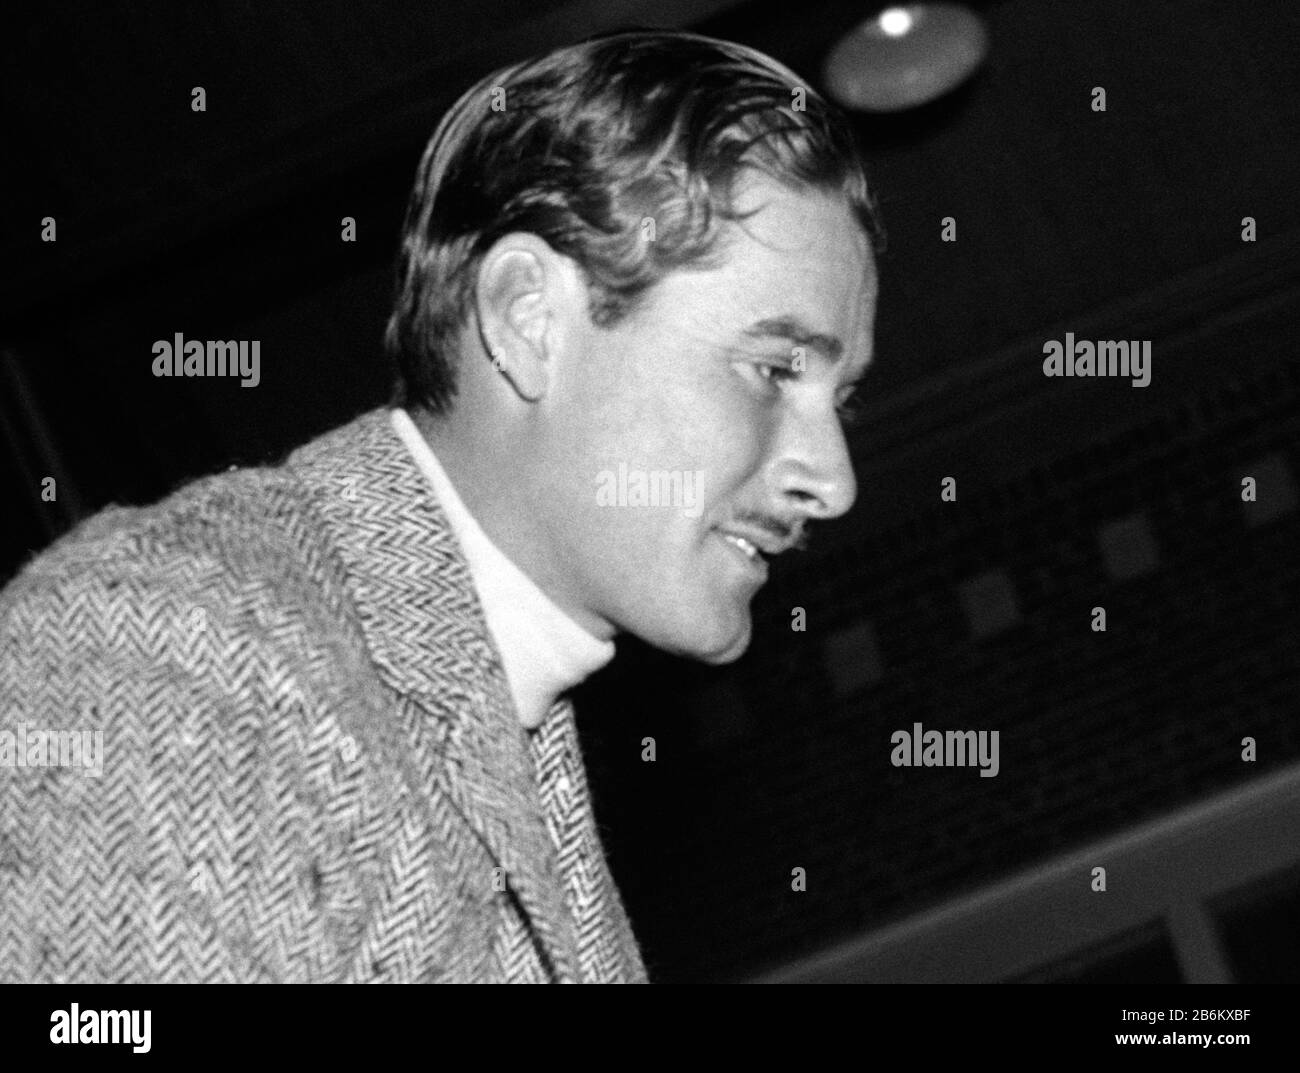 Vintage photo of Australian-born movie star Errol Flynn (1909 – 1959). The photo by Harris & Ewing was taken on January 25 1939 at a horseshow held at Fort Myer, Virginia, as part of birthday celebrations for President Franklin D Roosevelt. Stock Photo